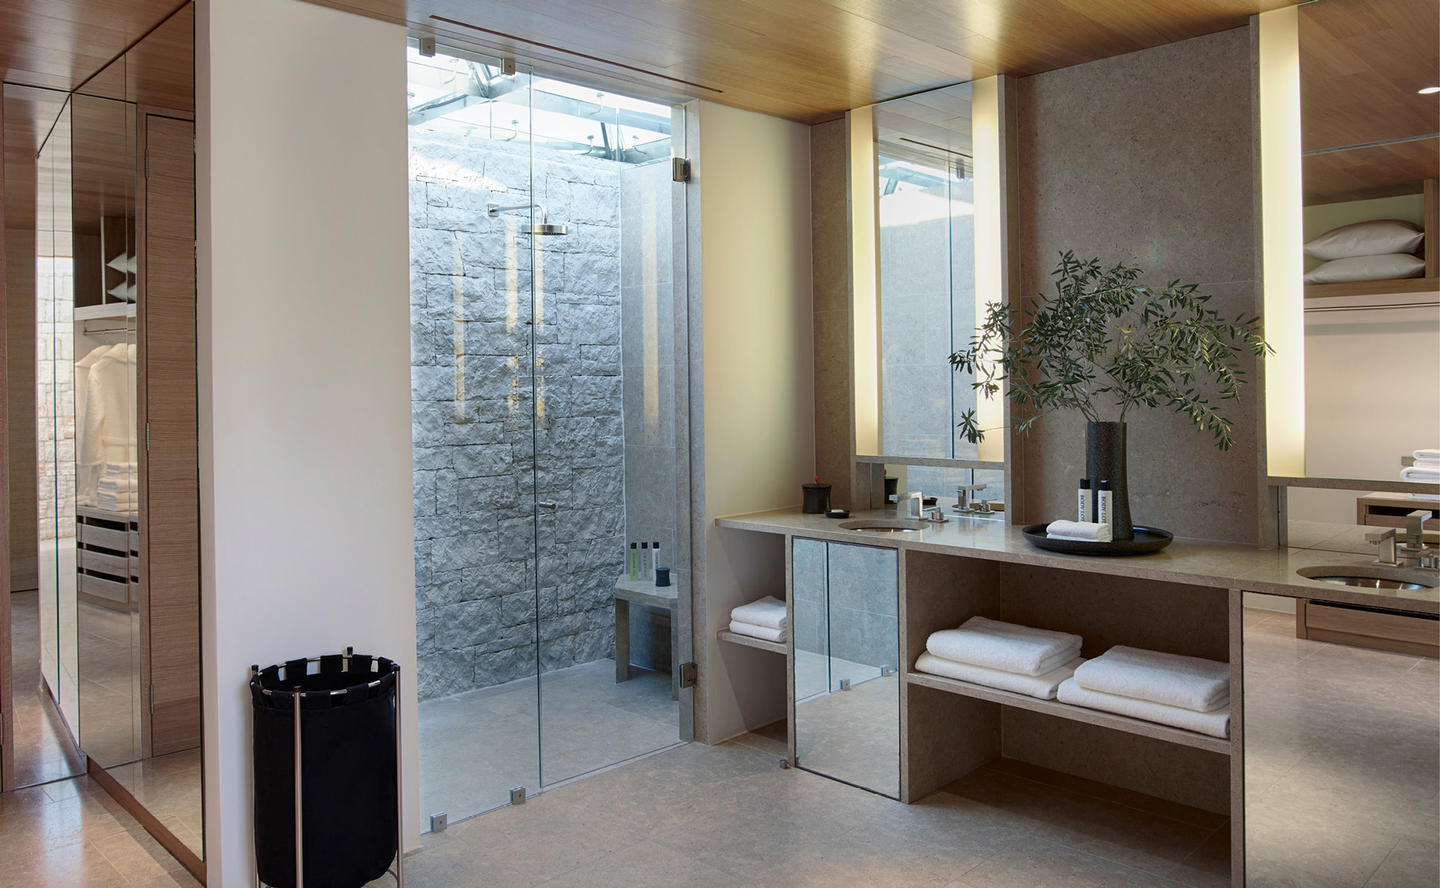 Beach Cabana Bathroom, Villa 20 - Amanzoe, Greece